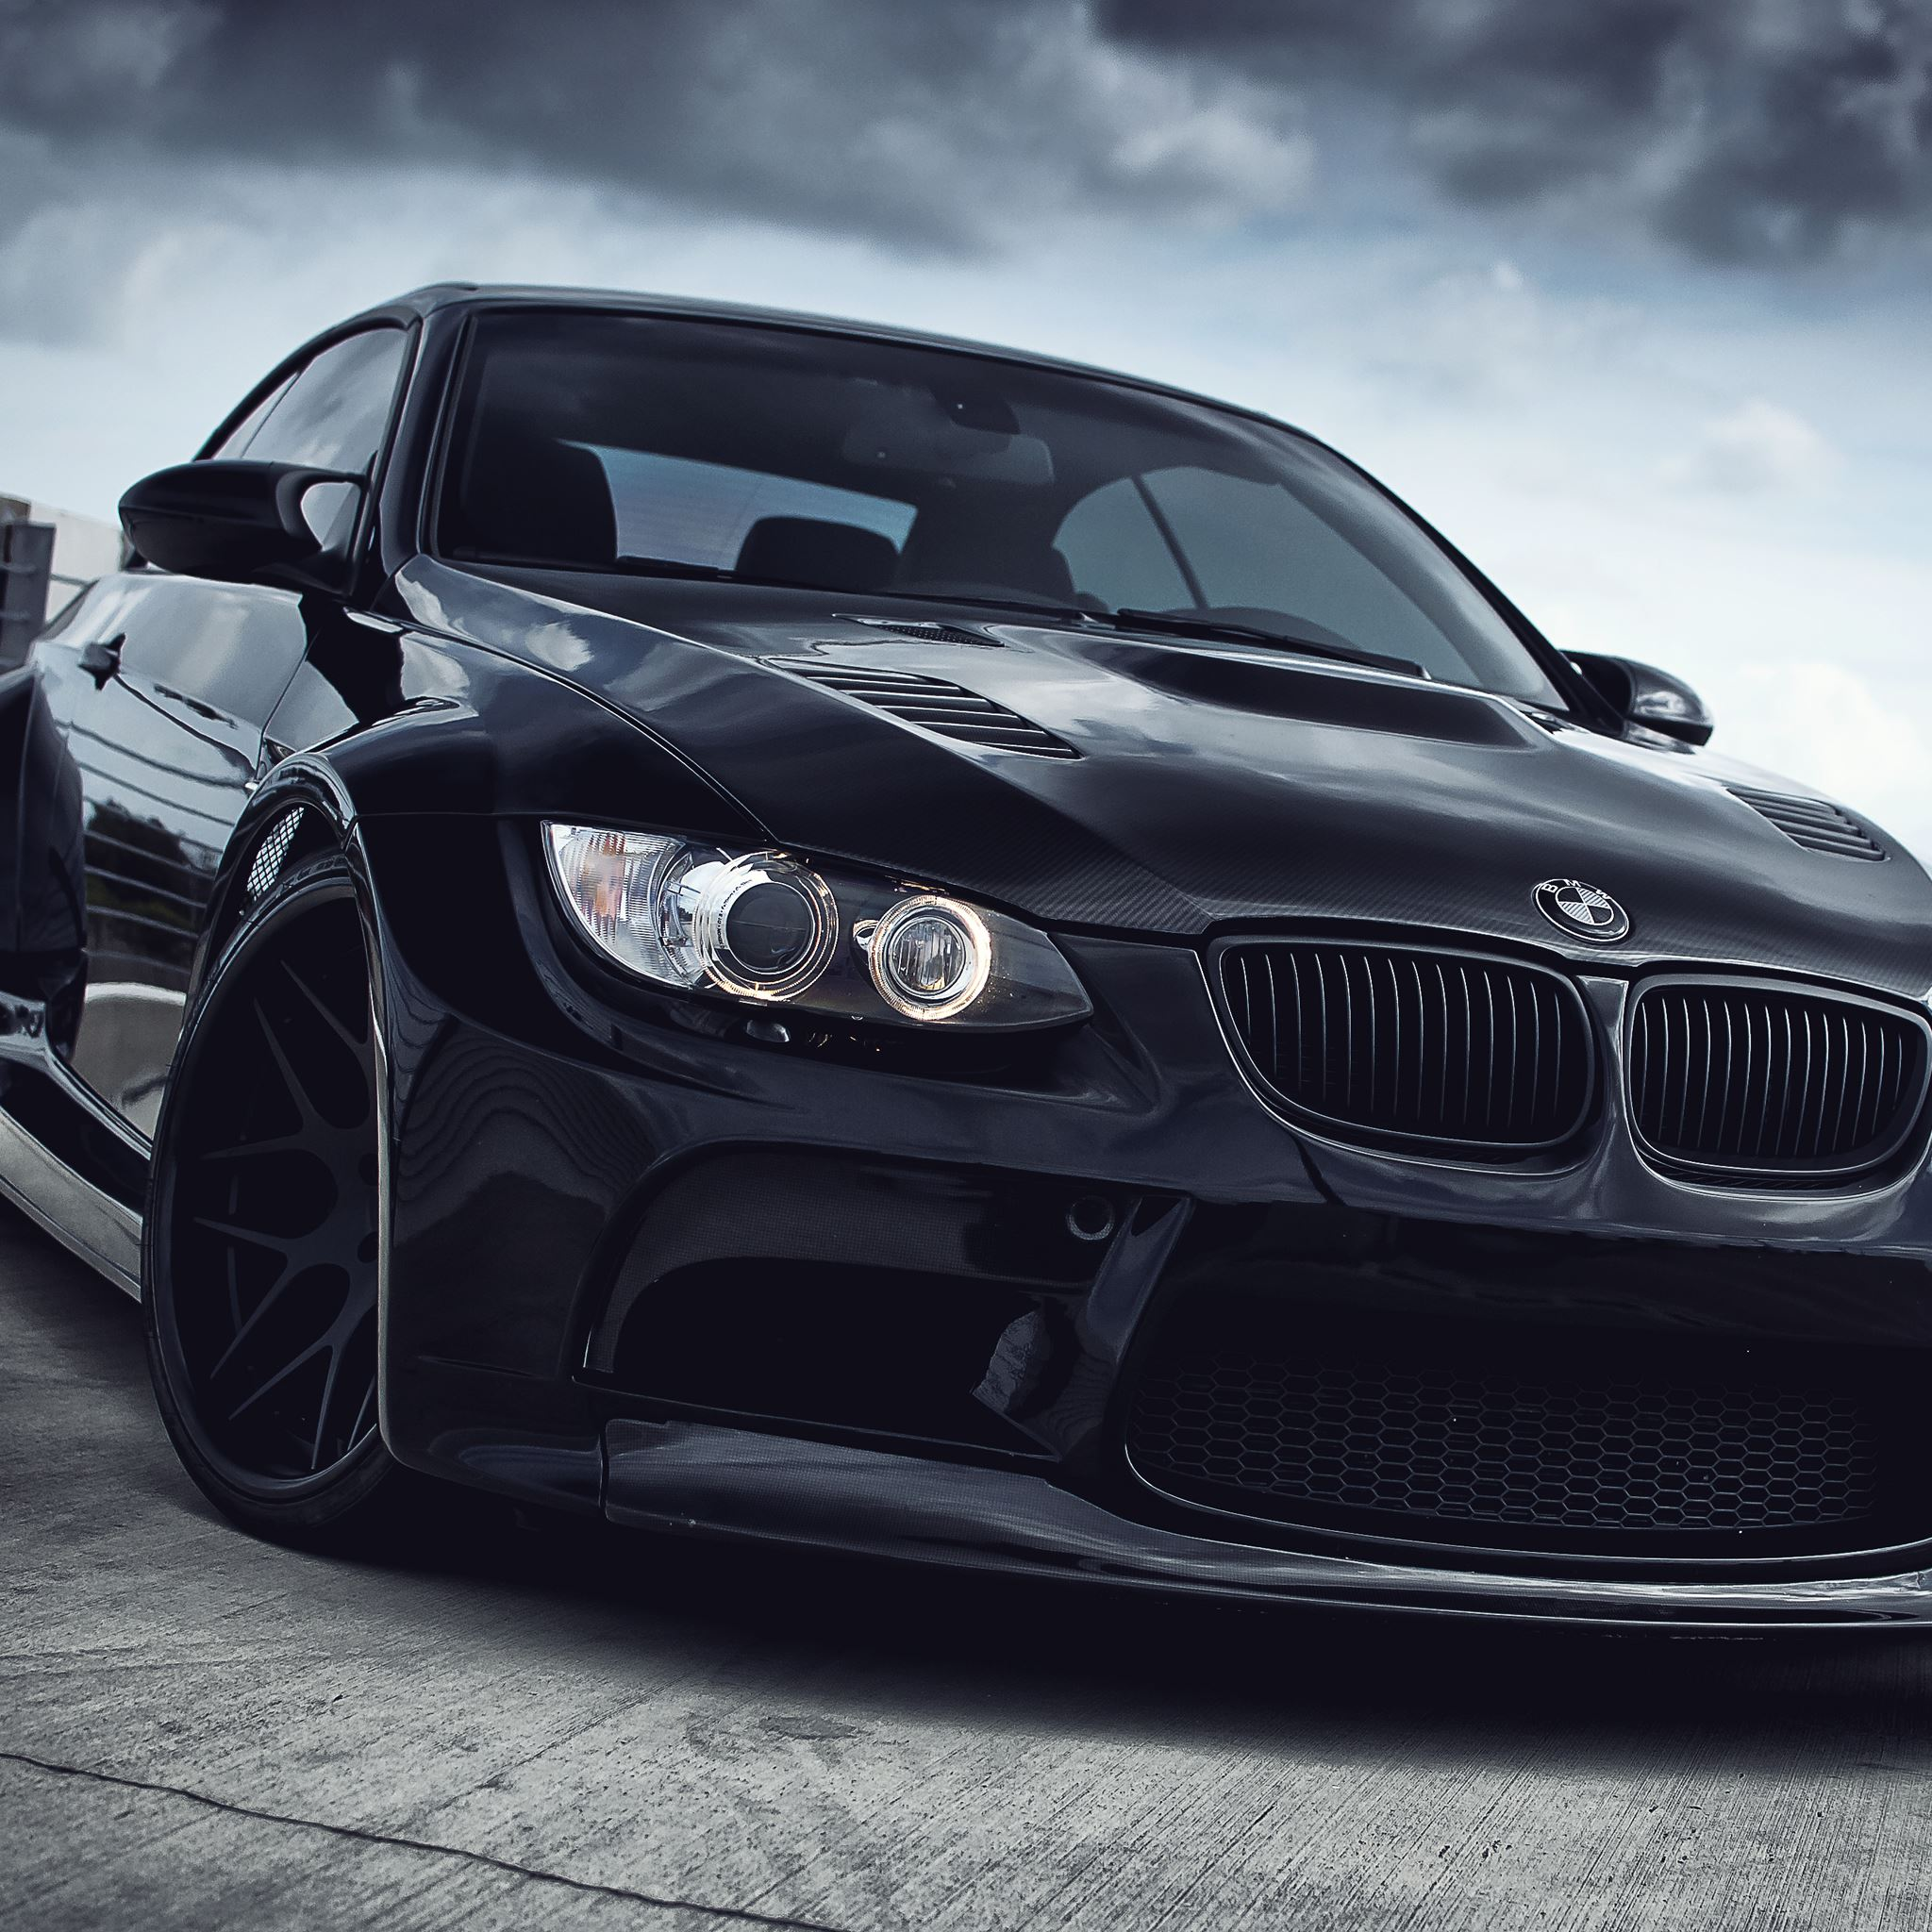 BMW IPad Air Wallpapers Free Download